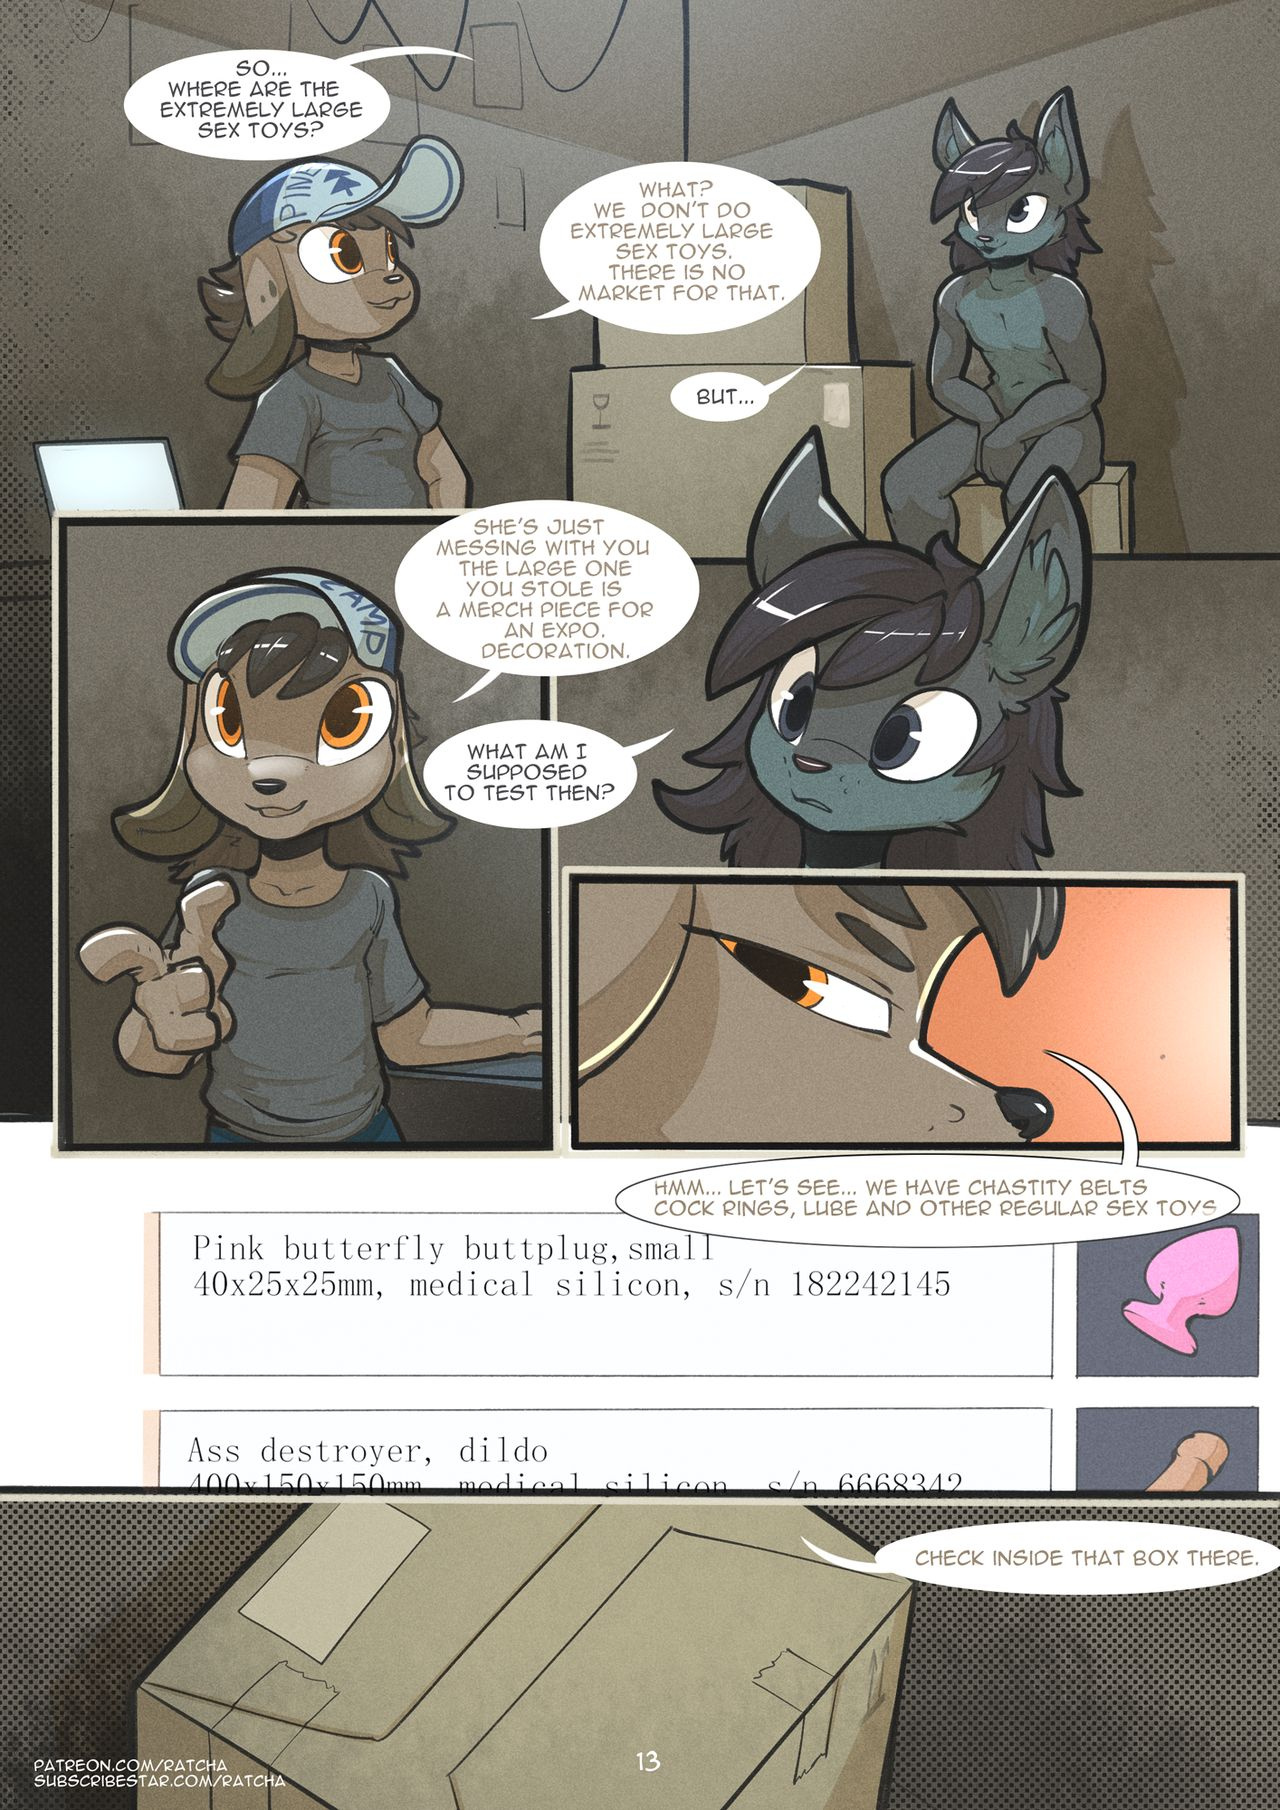 Chapter 5 - Problems porn comics Anal Sex, Furry, Pregnant, Sex Toys